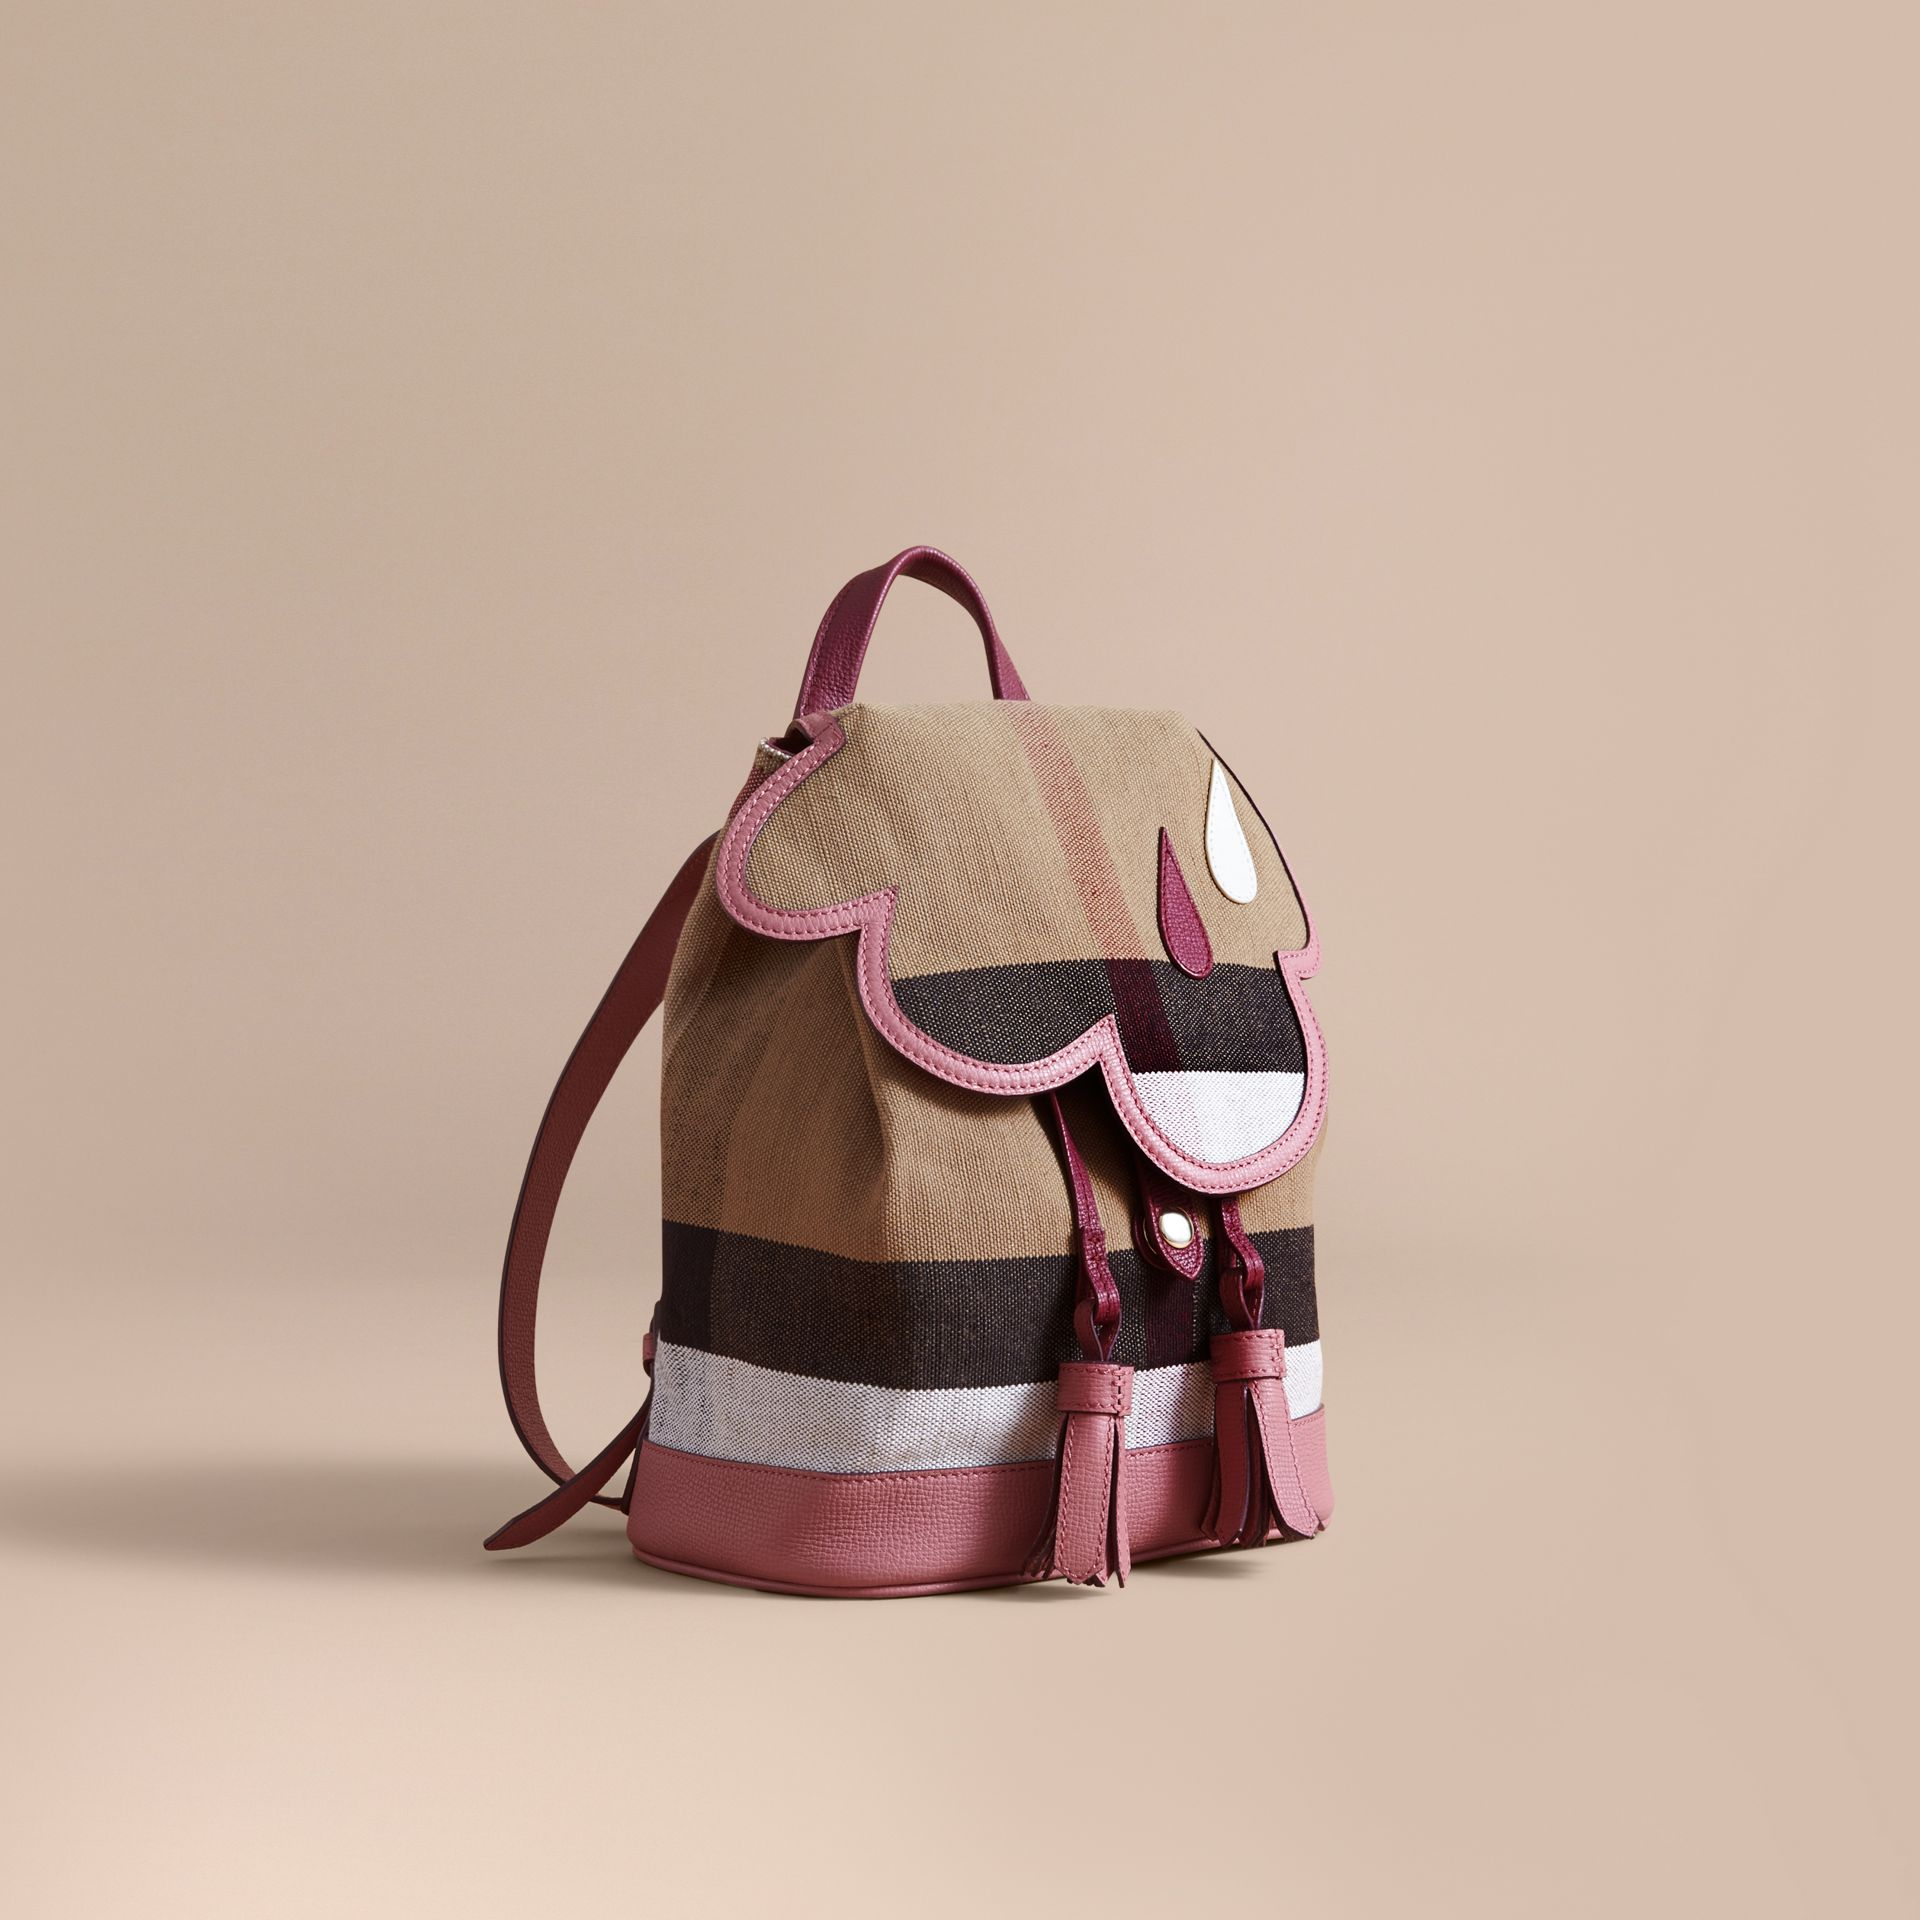 Weather Motif Canvas Check Mini Backpack in Mauve Pink | Burberry - gallery image 1